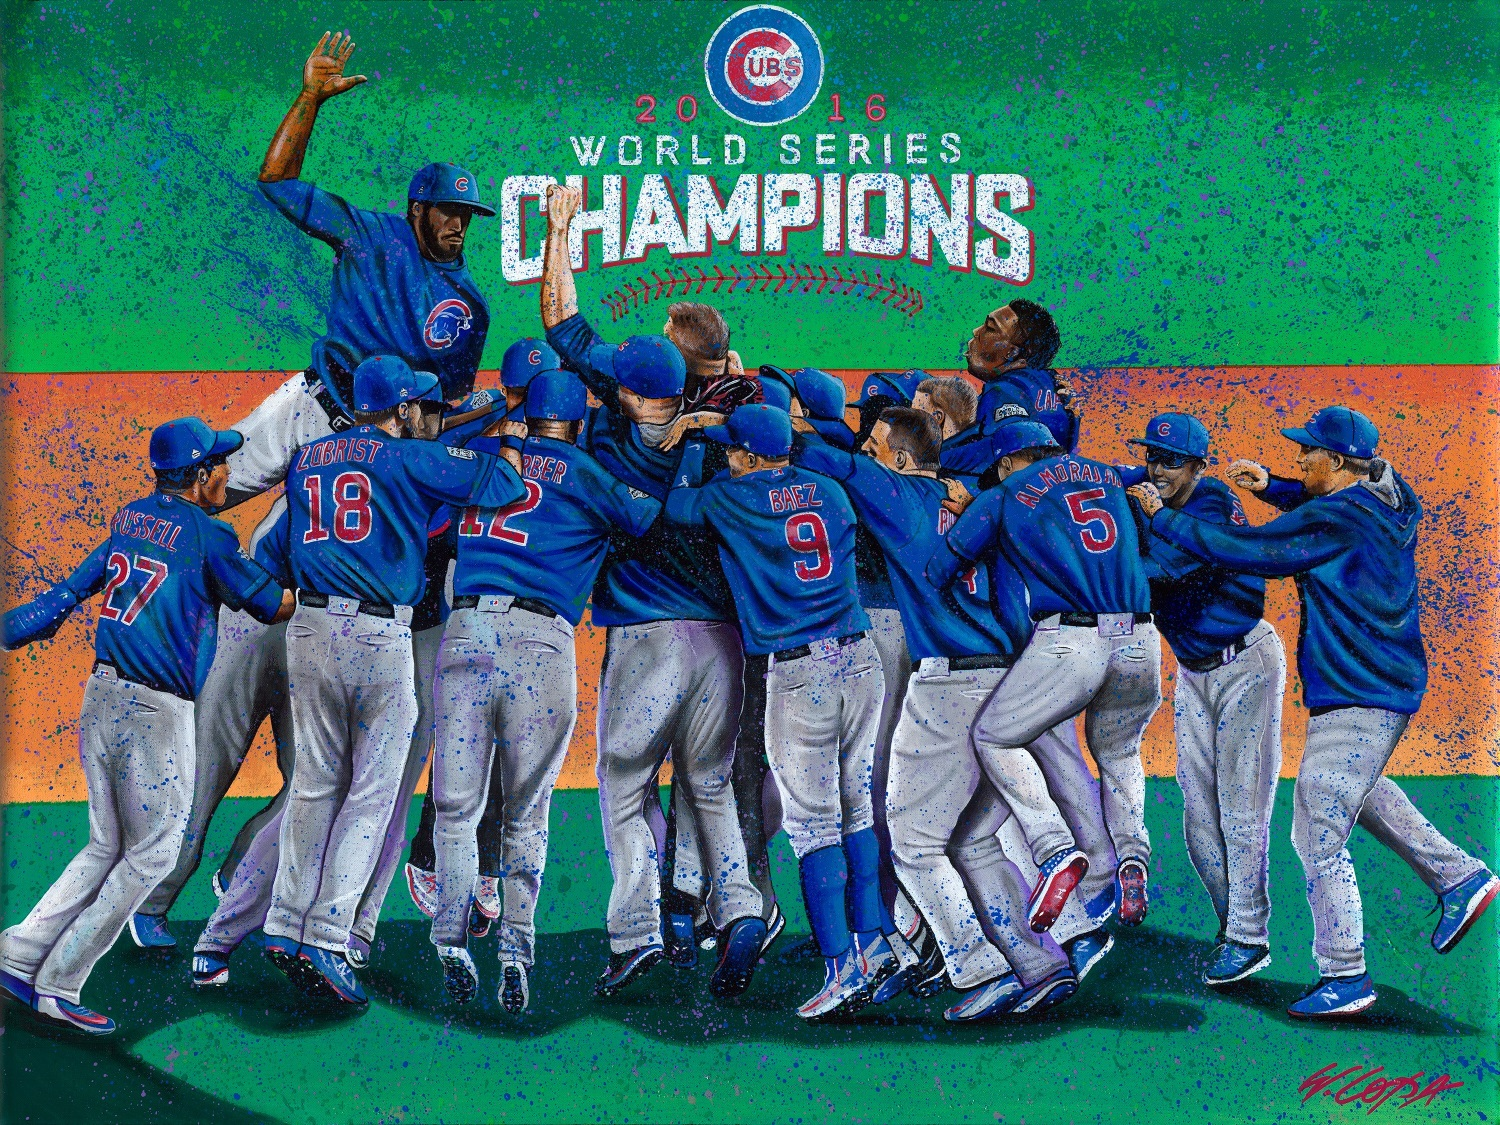 Press Release: Celebrate the Cubs World Series Championship with W. Lopa Studios Art 1